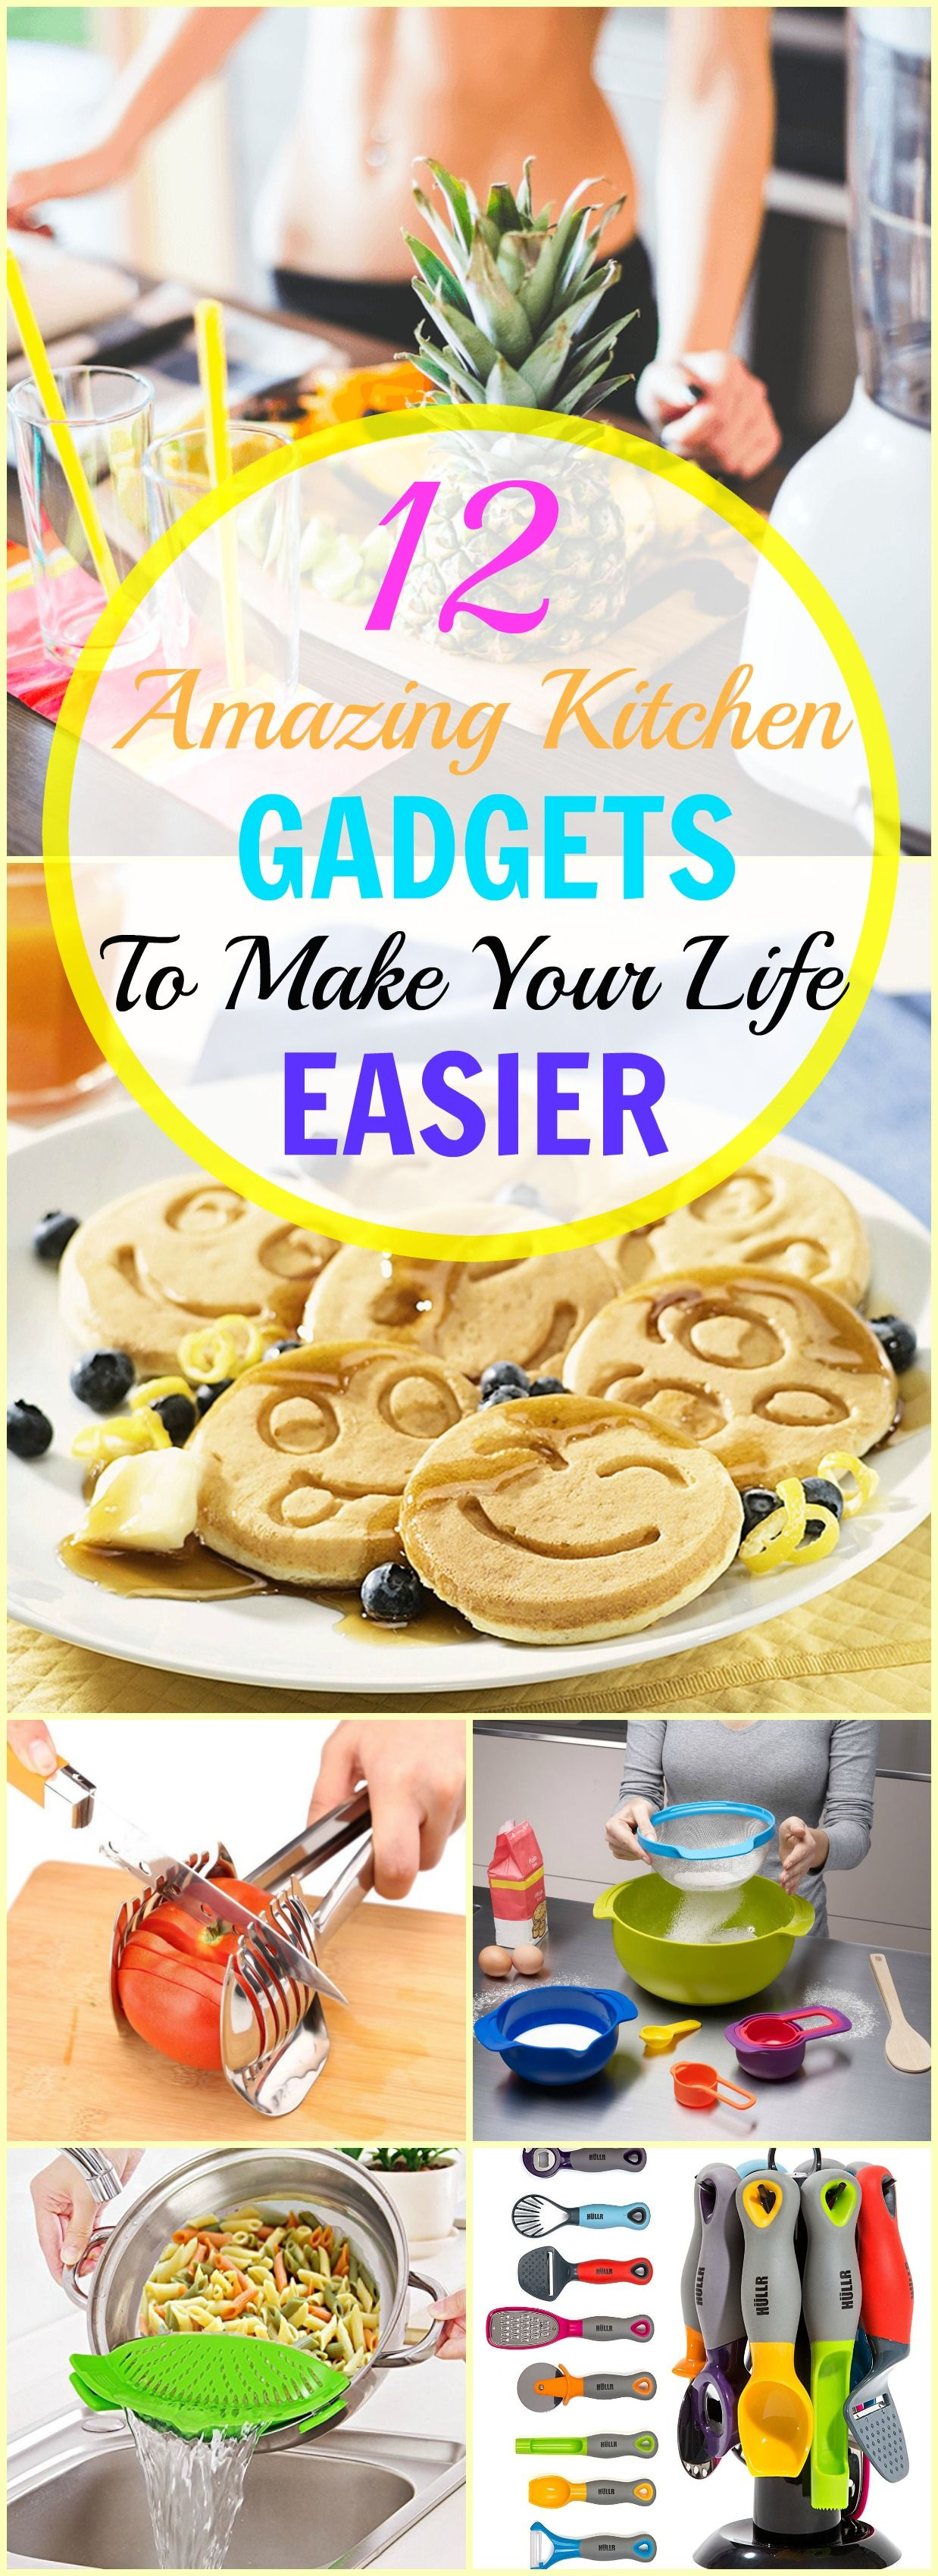 12 Amazing Kitchen Gadgets To Make Your Life Easier. These awesome kitchen tools are perfect! Great way to get the job done in the kitchen while being fancy and creative.: